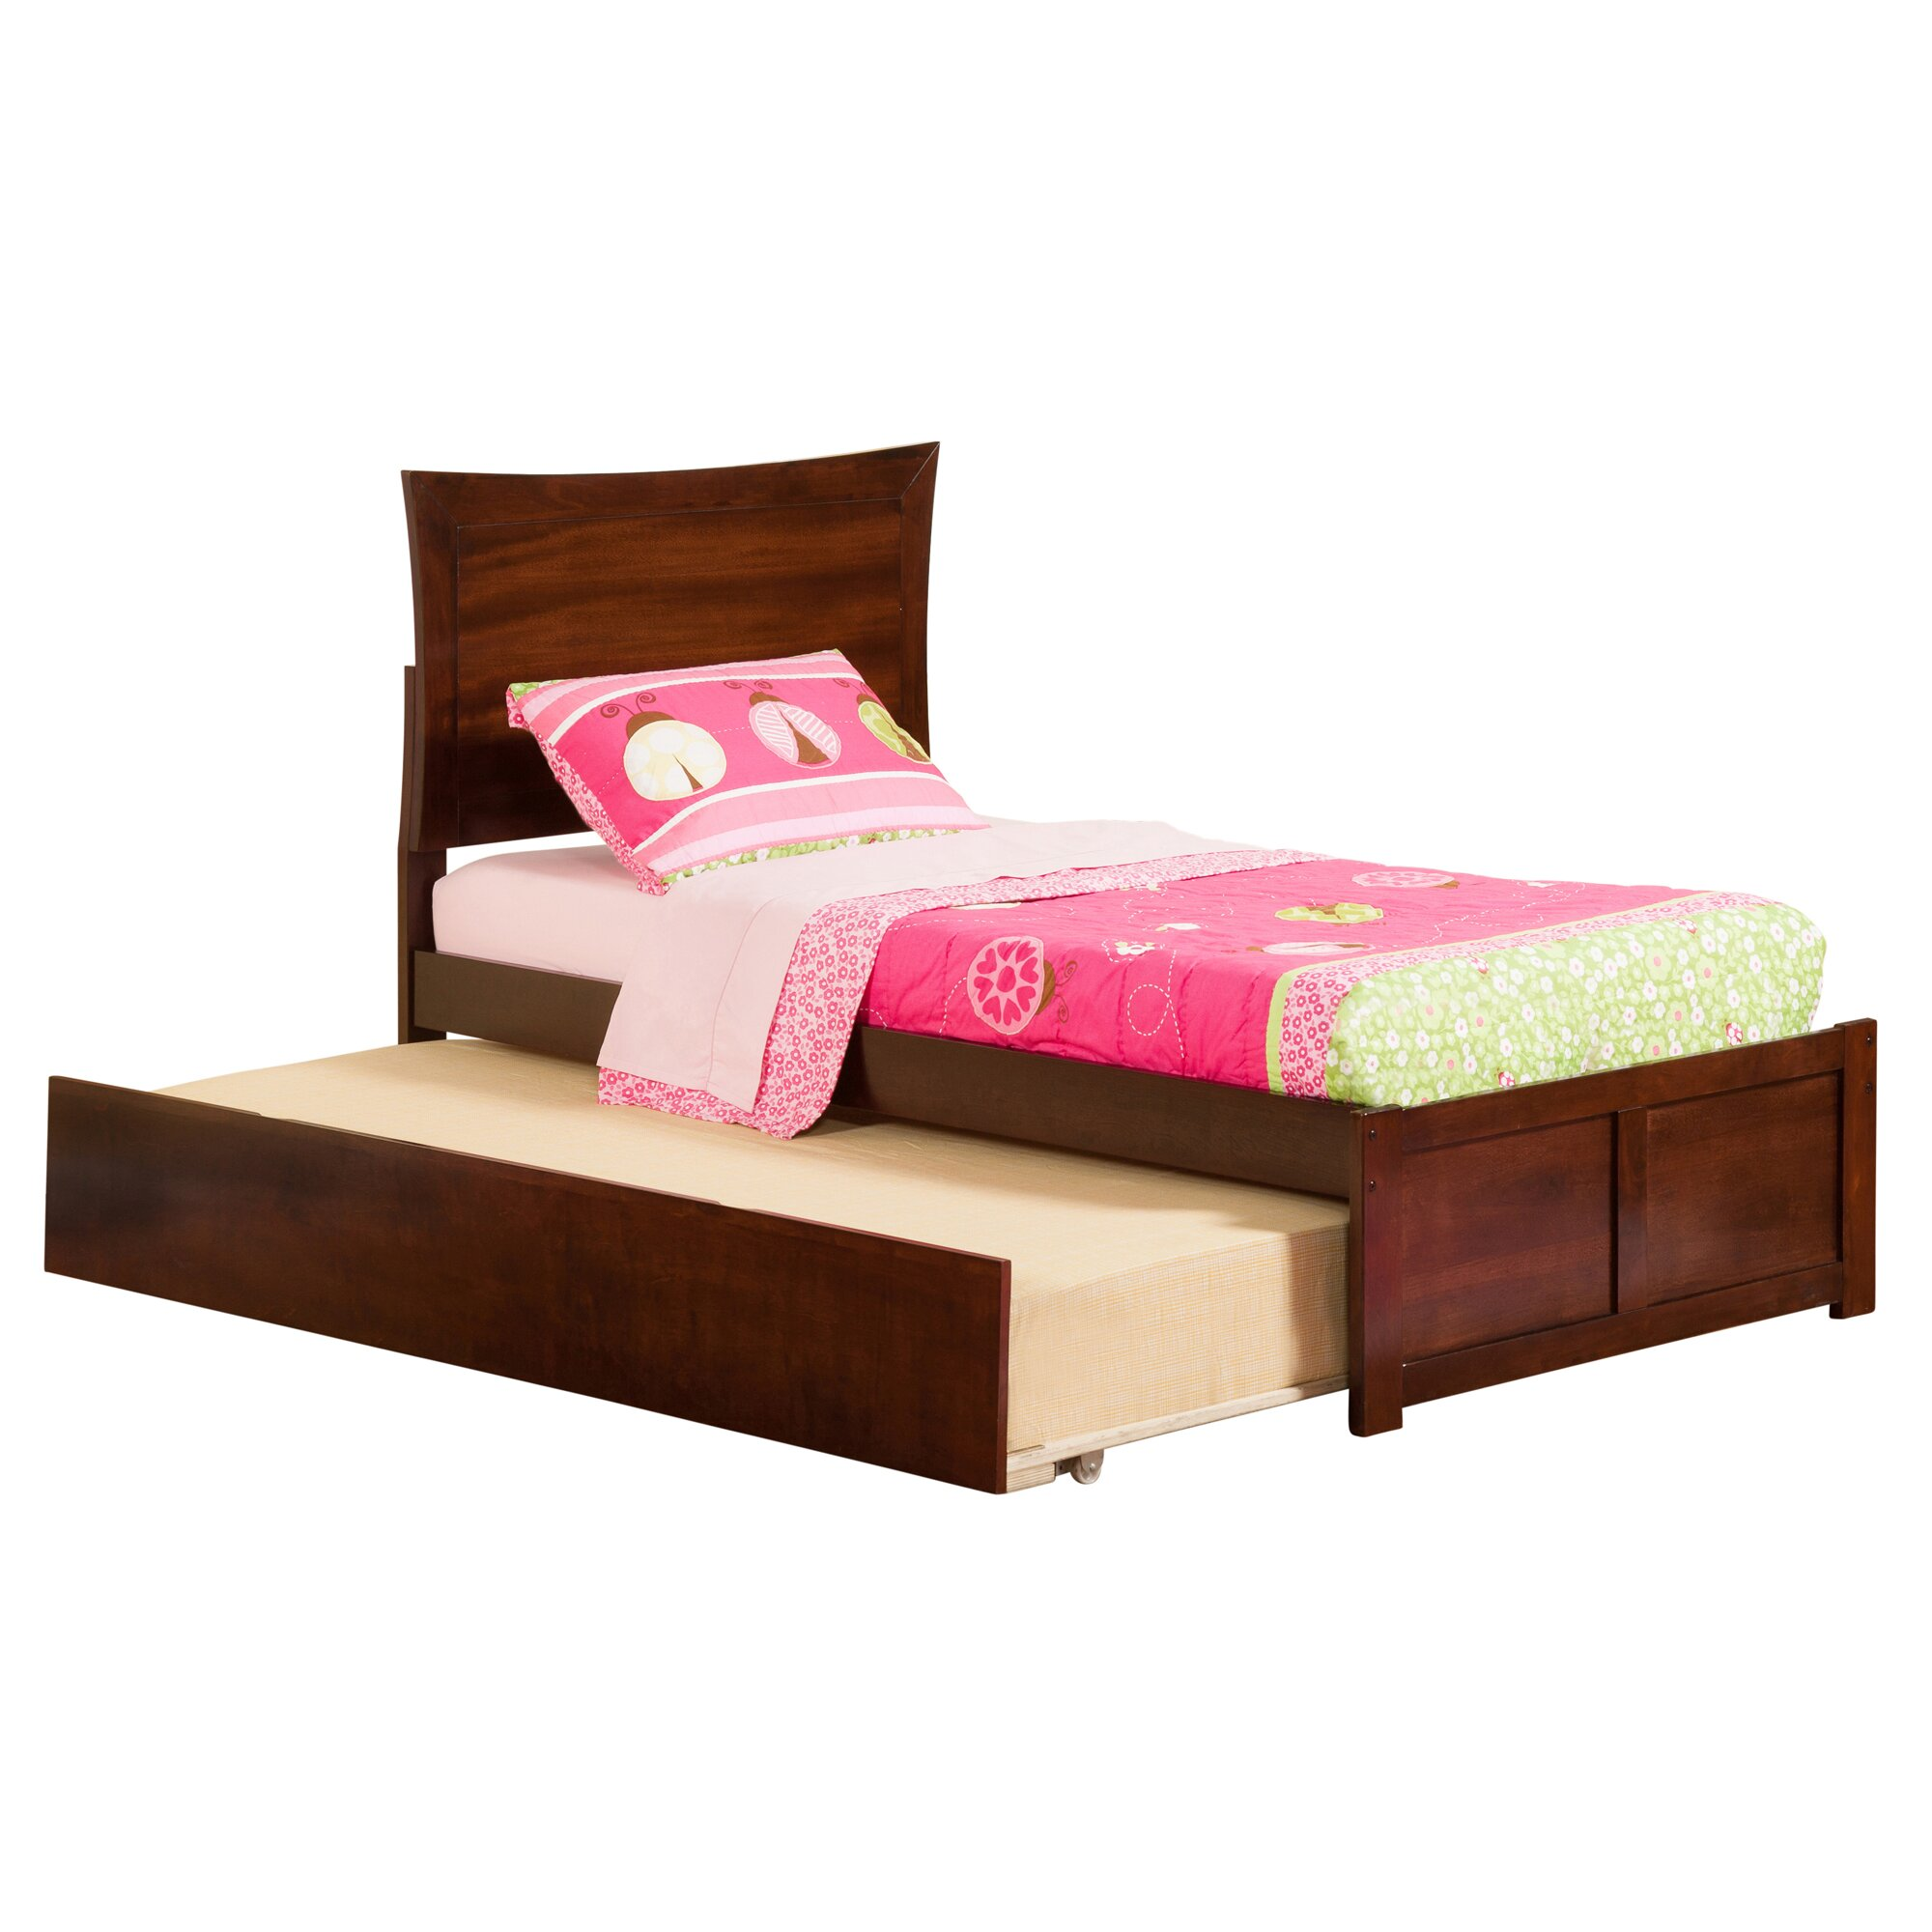 Wayfair Furniture Trundle Beds